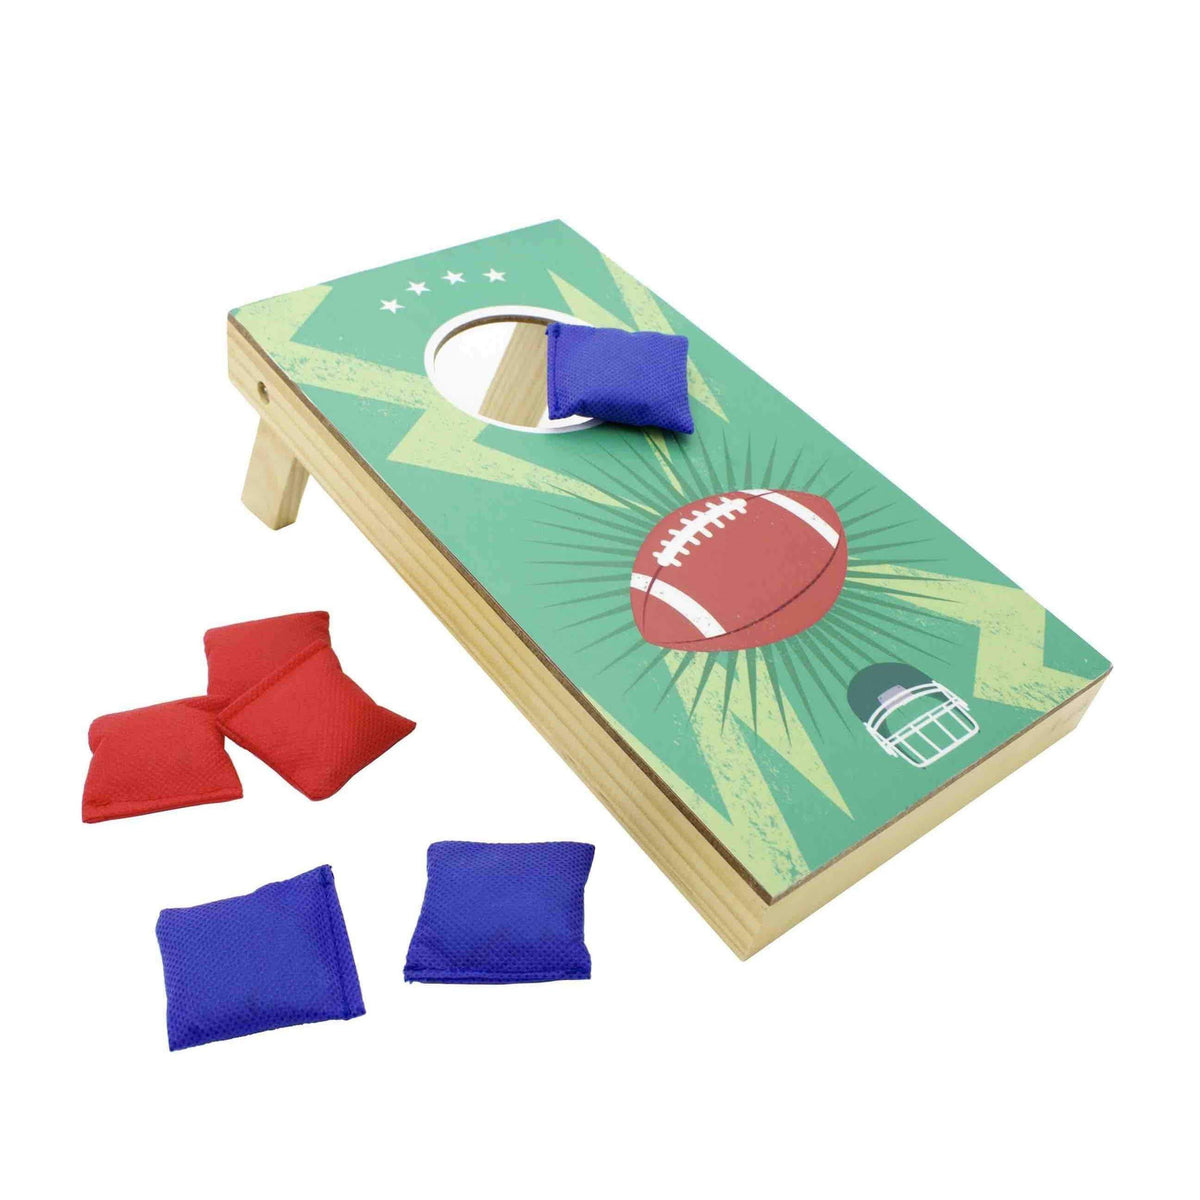 2-in-1 Cornhole & Beer Ring Toss Tabletop Game Set